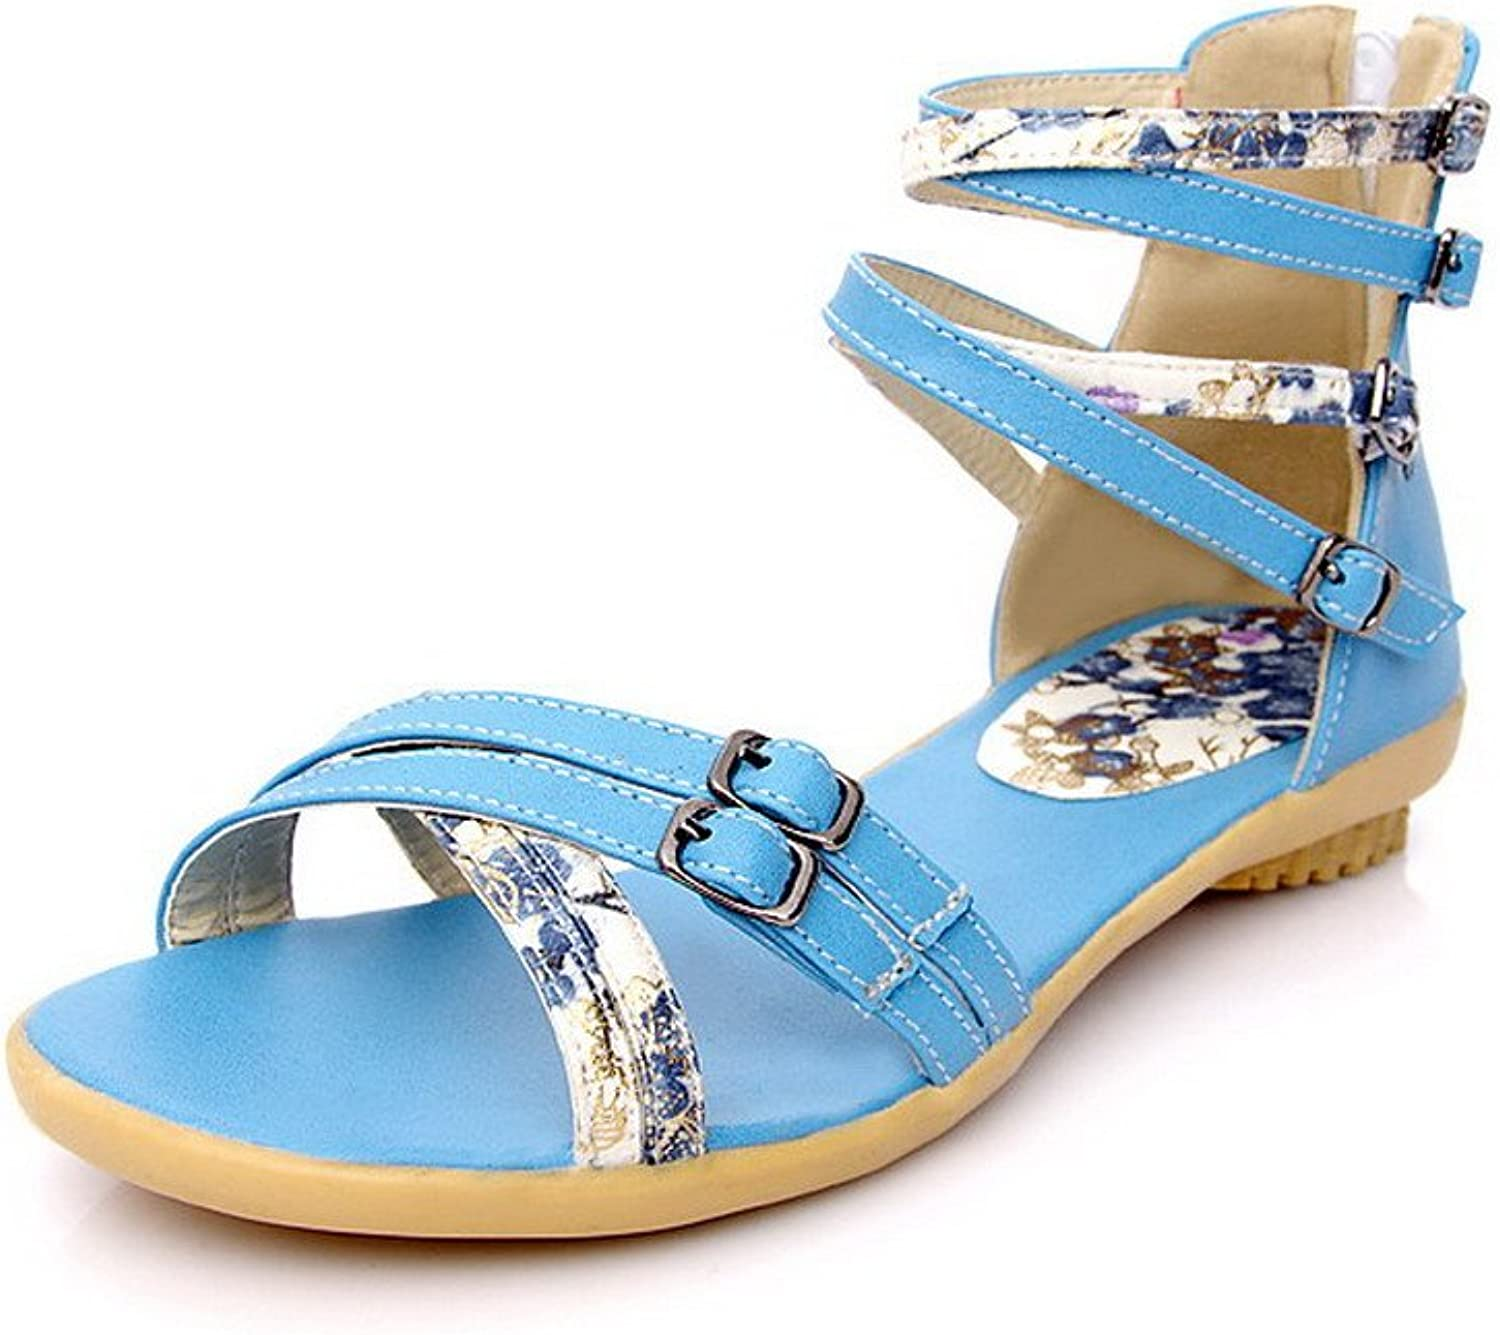 WeenFashion Women's PU Assorted color Zipper Open Toe Low-Heels Sandals